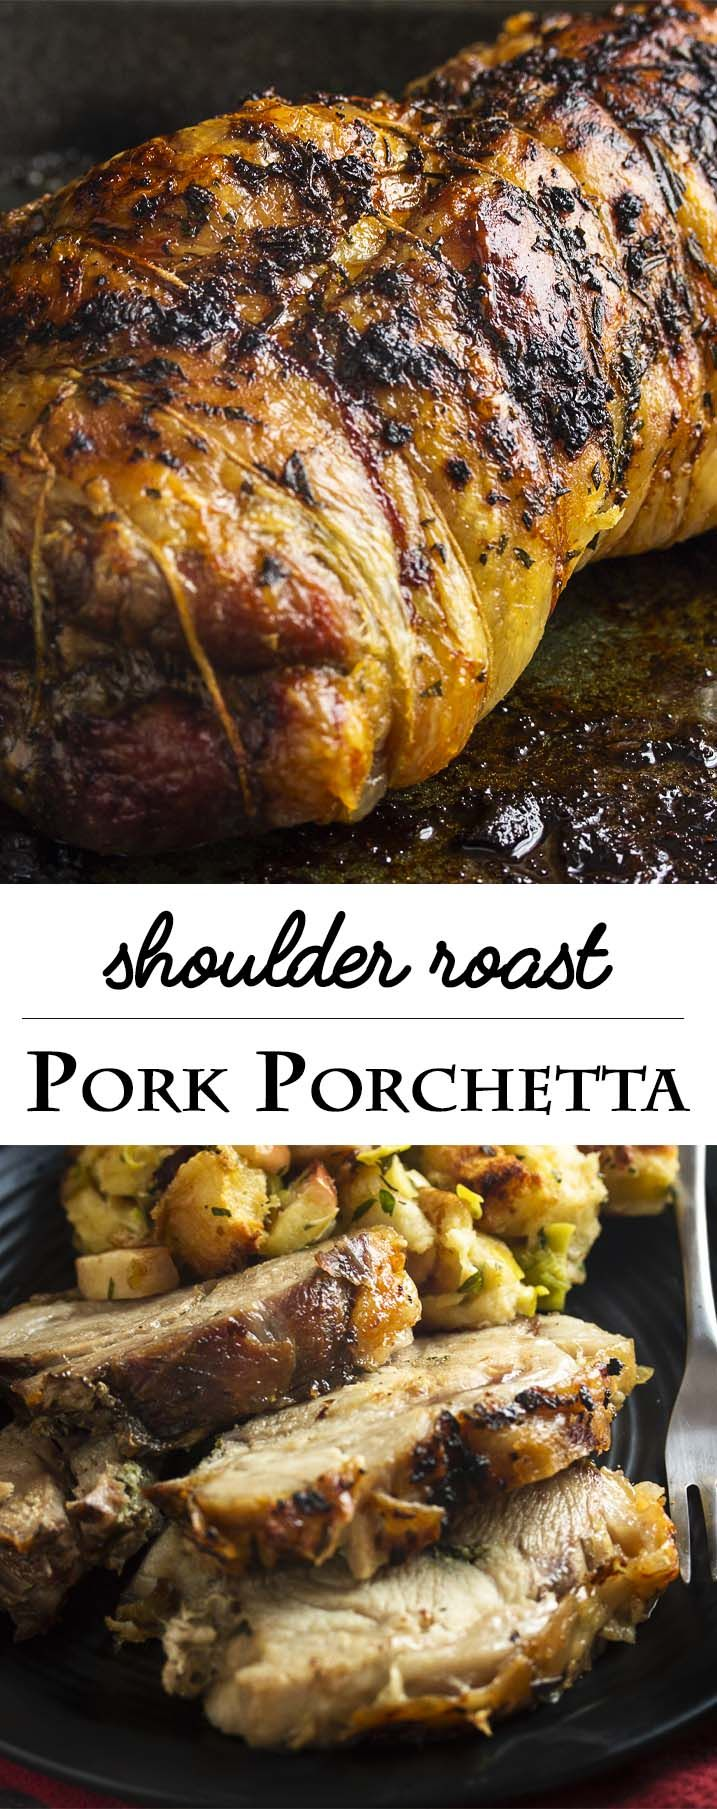 Boneless pork shoulder rubbed with herbs and garlic, then rolled and roasted makes a simple, rich, and intensely flavored pork porchetta.   justalittlebitofbacon.com